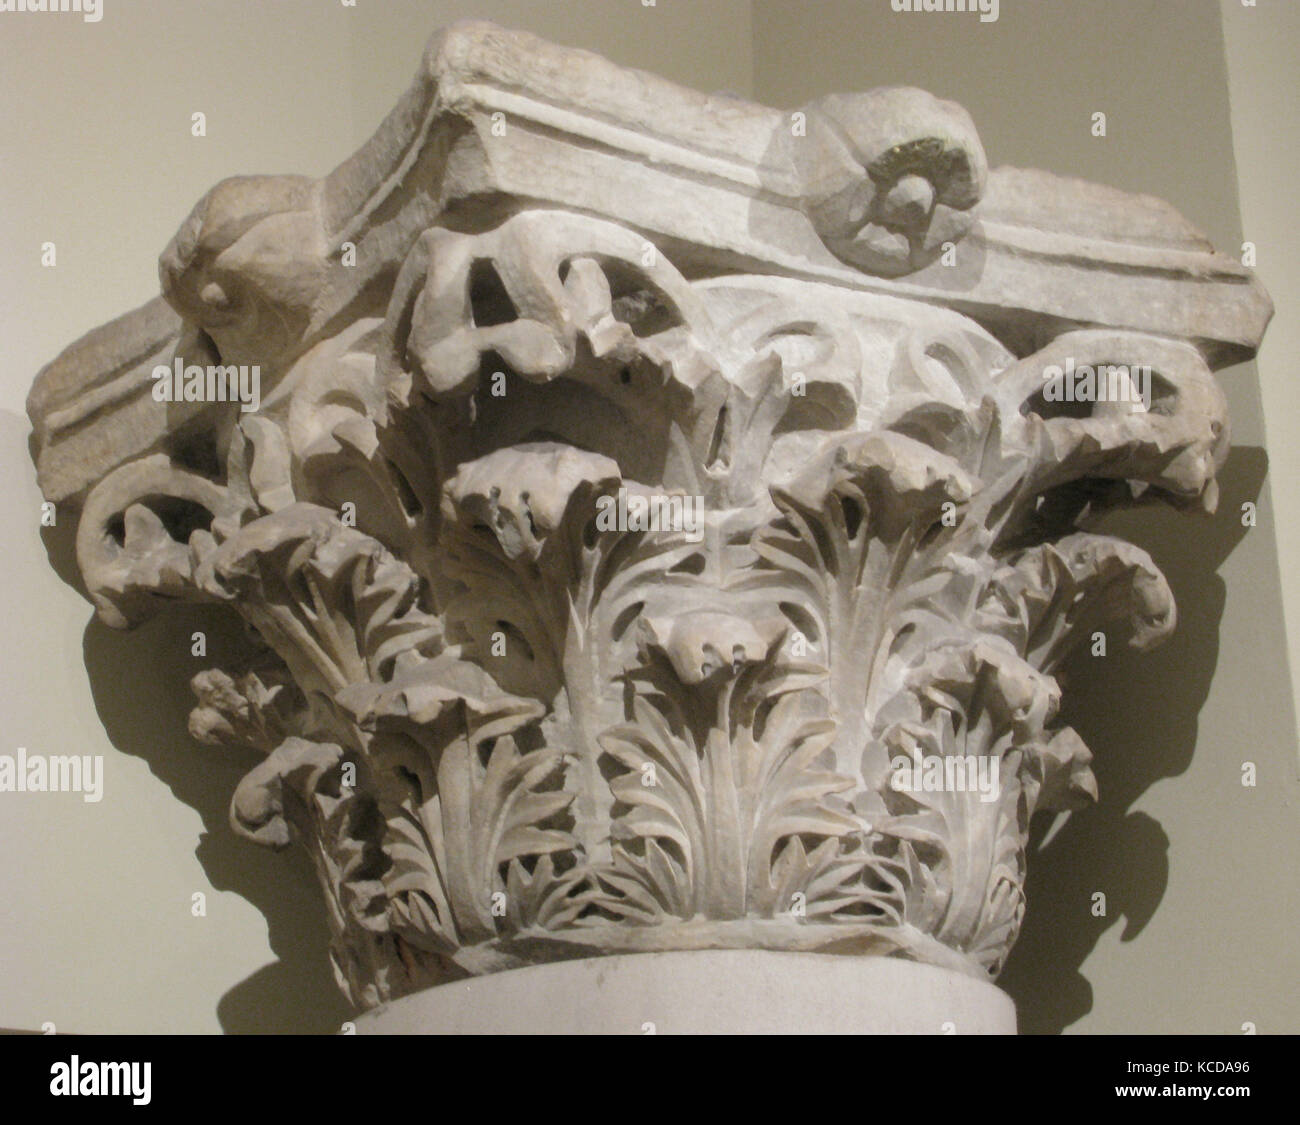 Capital with Acanthus Leaves, 4th century, Made in Egypt, Marble, Sculpture, Marble was often imported from quarries - Stock Image